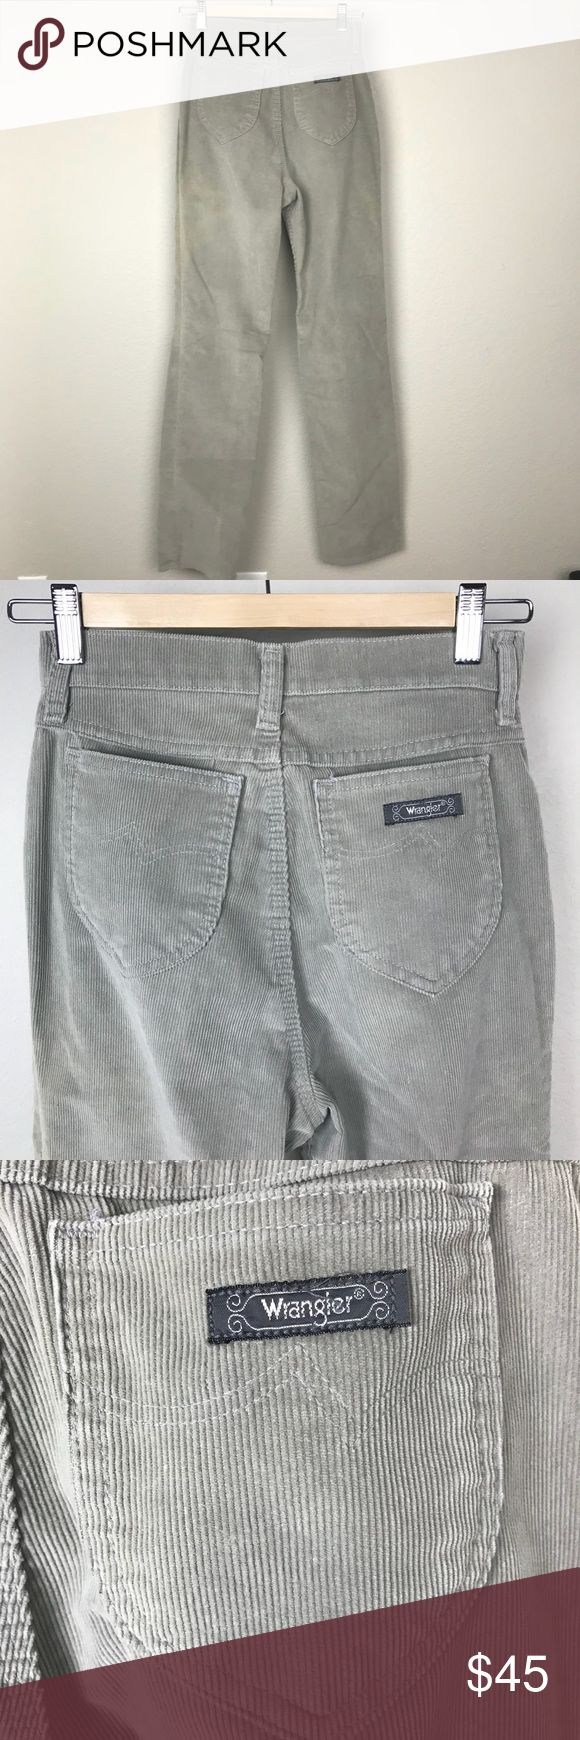 """VTG Wrangler High Waist Corduroy Mom Jean Pants Vintage Wrangler 100% cotton thin wale corduroy in a sandy neutral pale beige grey Yeezy looking color that goes with everything- especially black halter tops. Good used condition, no holes or tears but there is some sun fading. 24"""" waist, 17"""" hips and 32"""" inseam. Wear long and lean or cuff em wide. Tag says Misses 8. Made in the USA Wrangler Pants"""